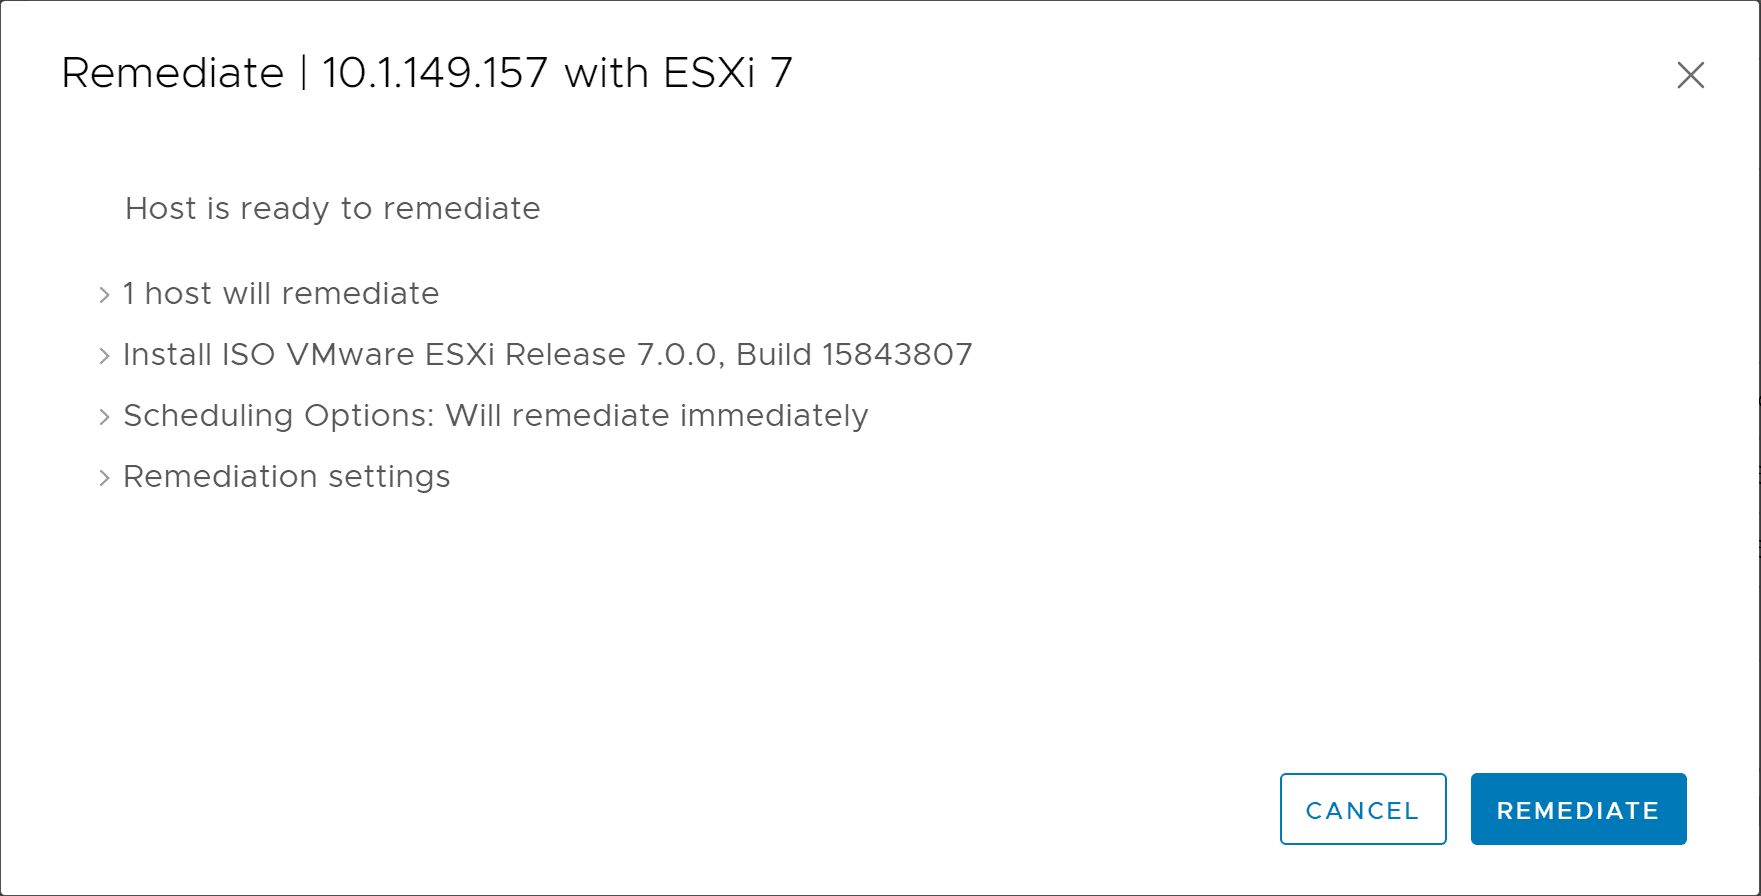 Remediating-a-single-ESXi-6.7-U3-host-to-ESXi-7-1 Upgrade to ESXi 7 with vSphere Lifecycle Manager